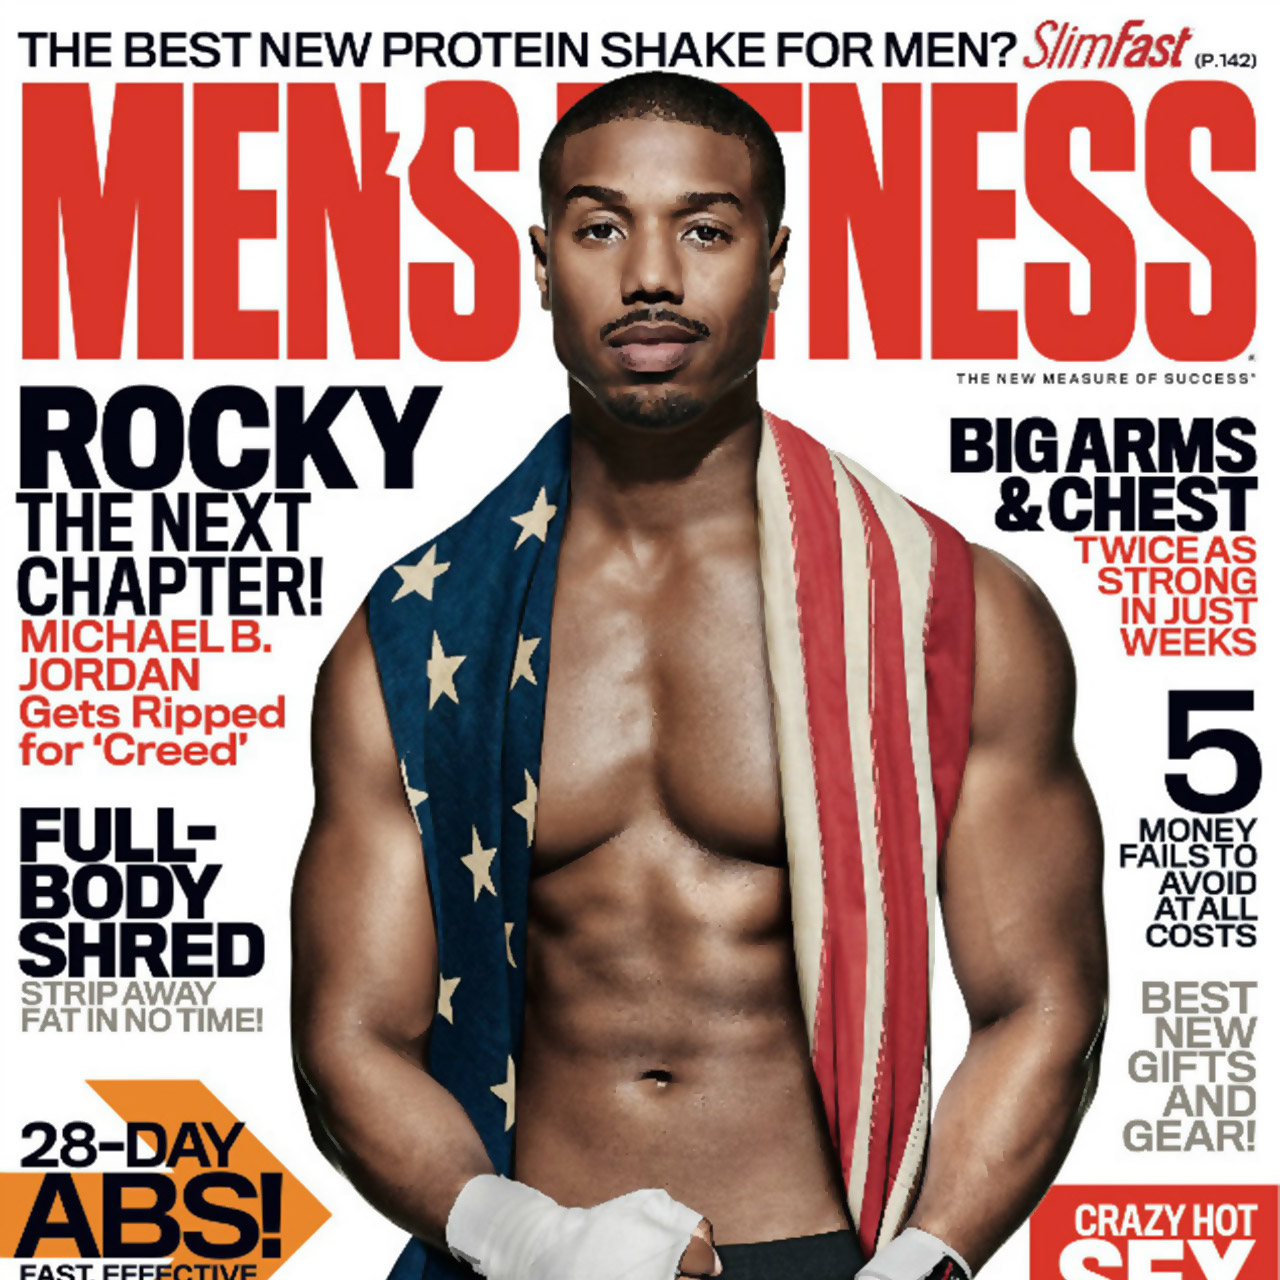 Michael B. Jordan gets ripped for 'Creed' on cover of Men's Fitness